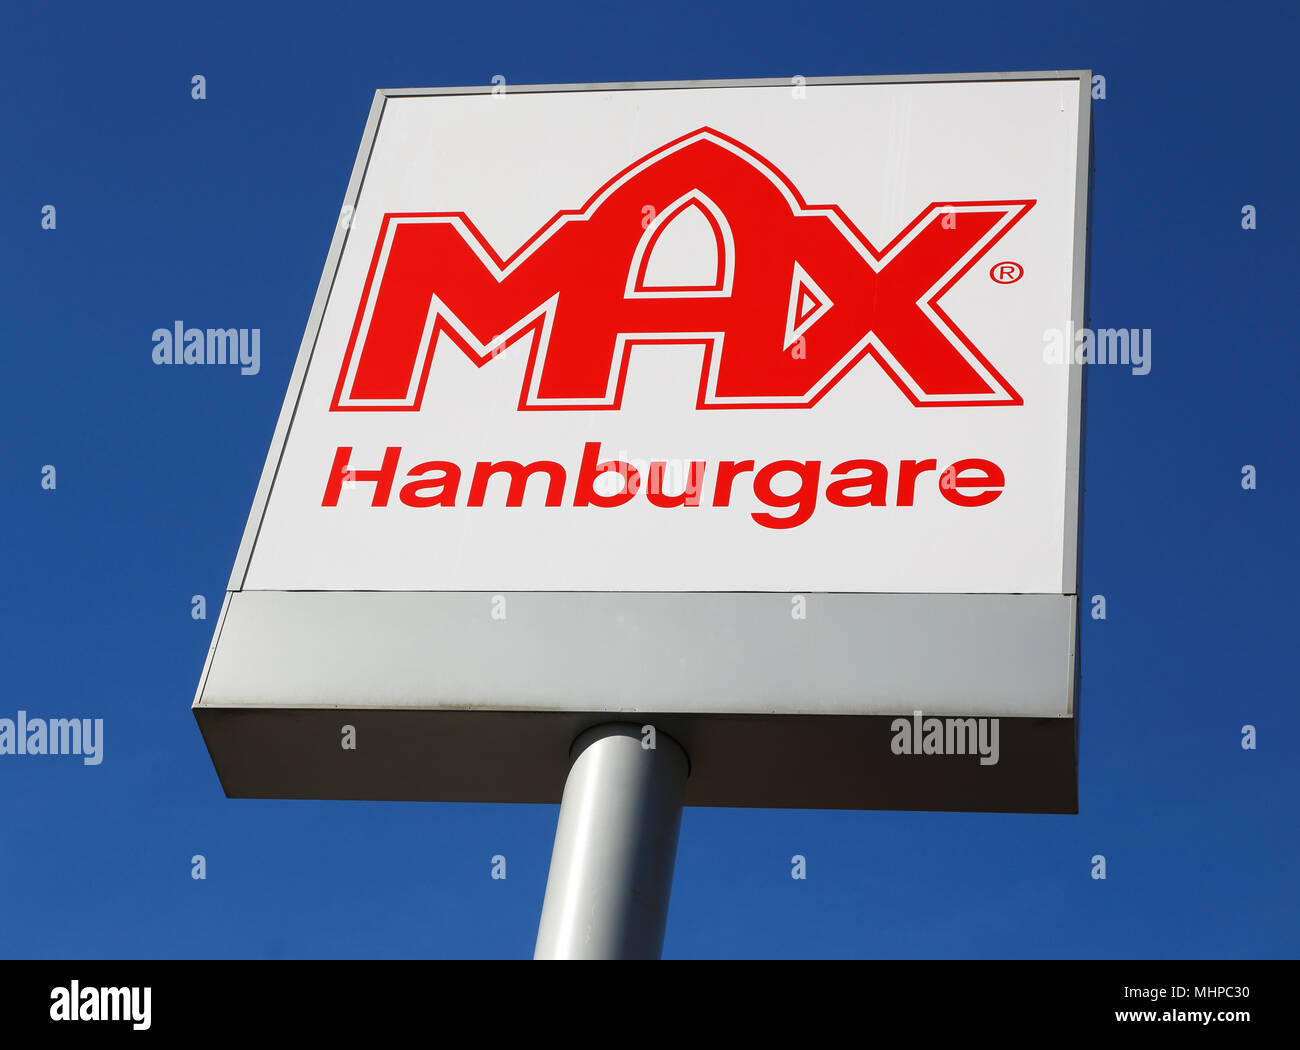 Ornskoldsvik, Sweden - March 28, 2014: The Swedish hamburger chain Max logo on pole against blue sky. - Stock Image